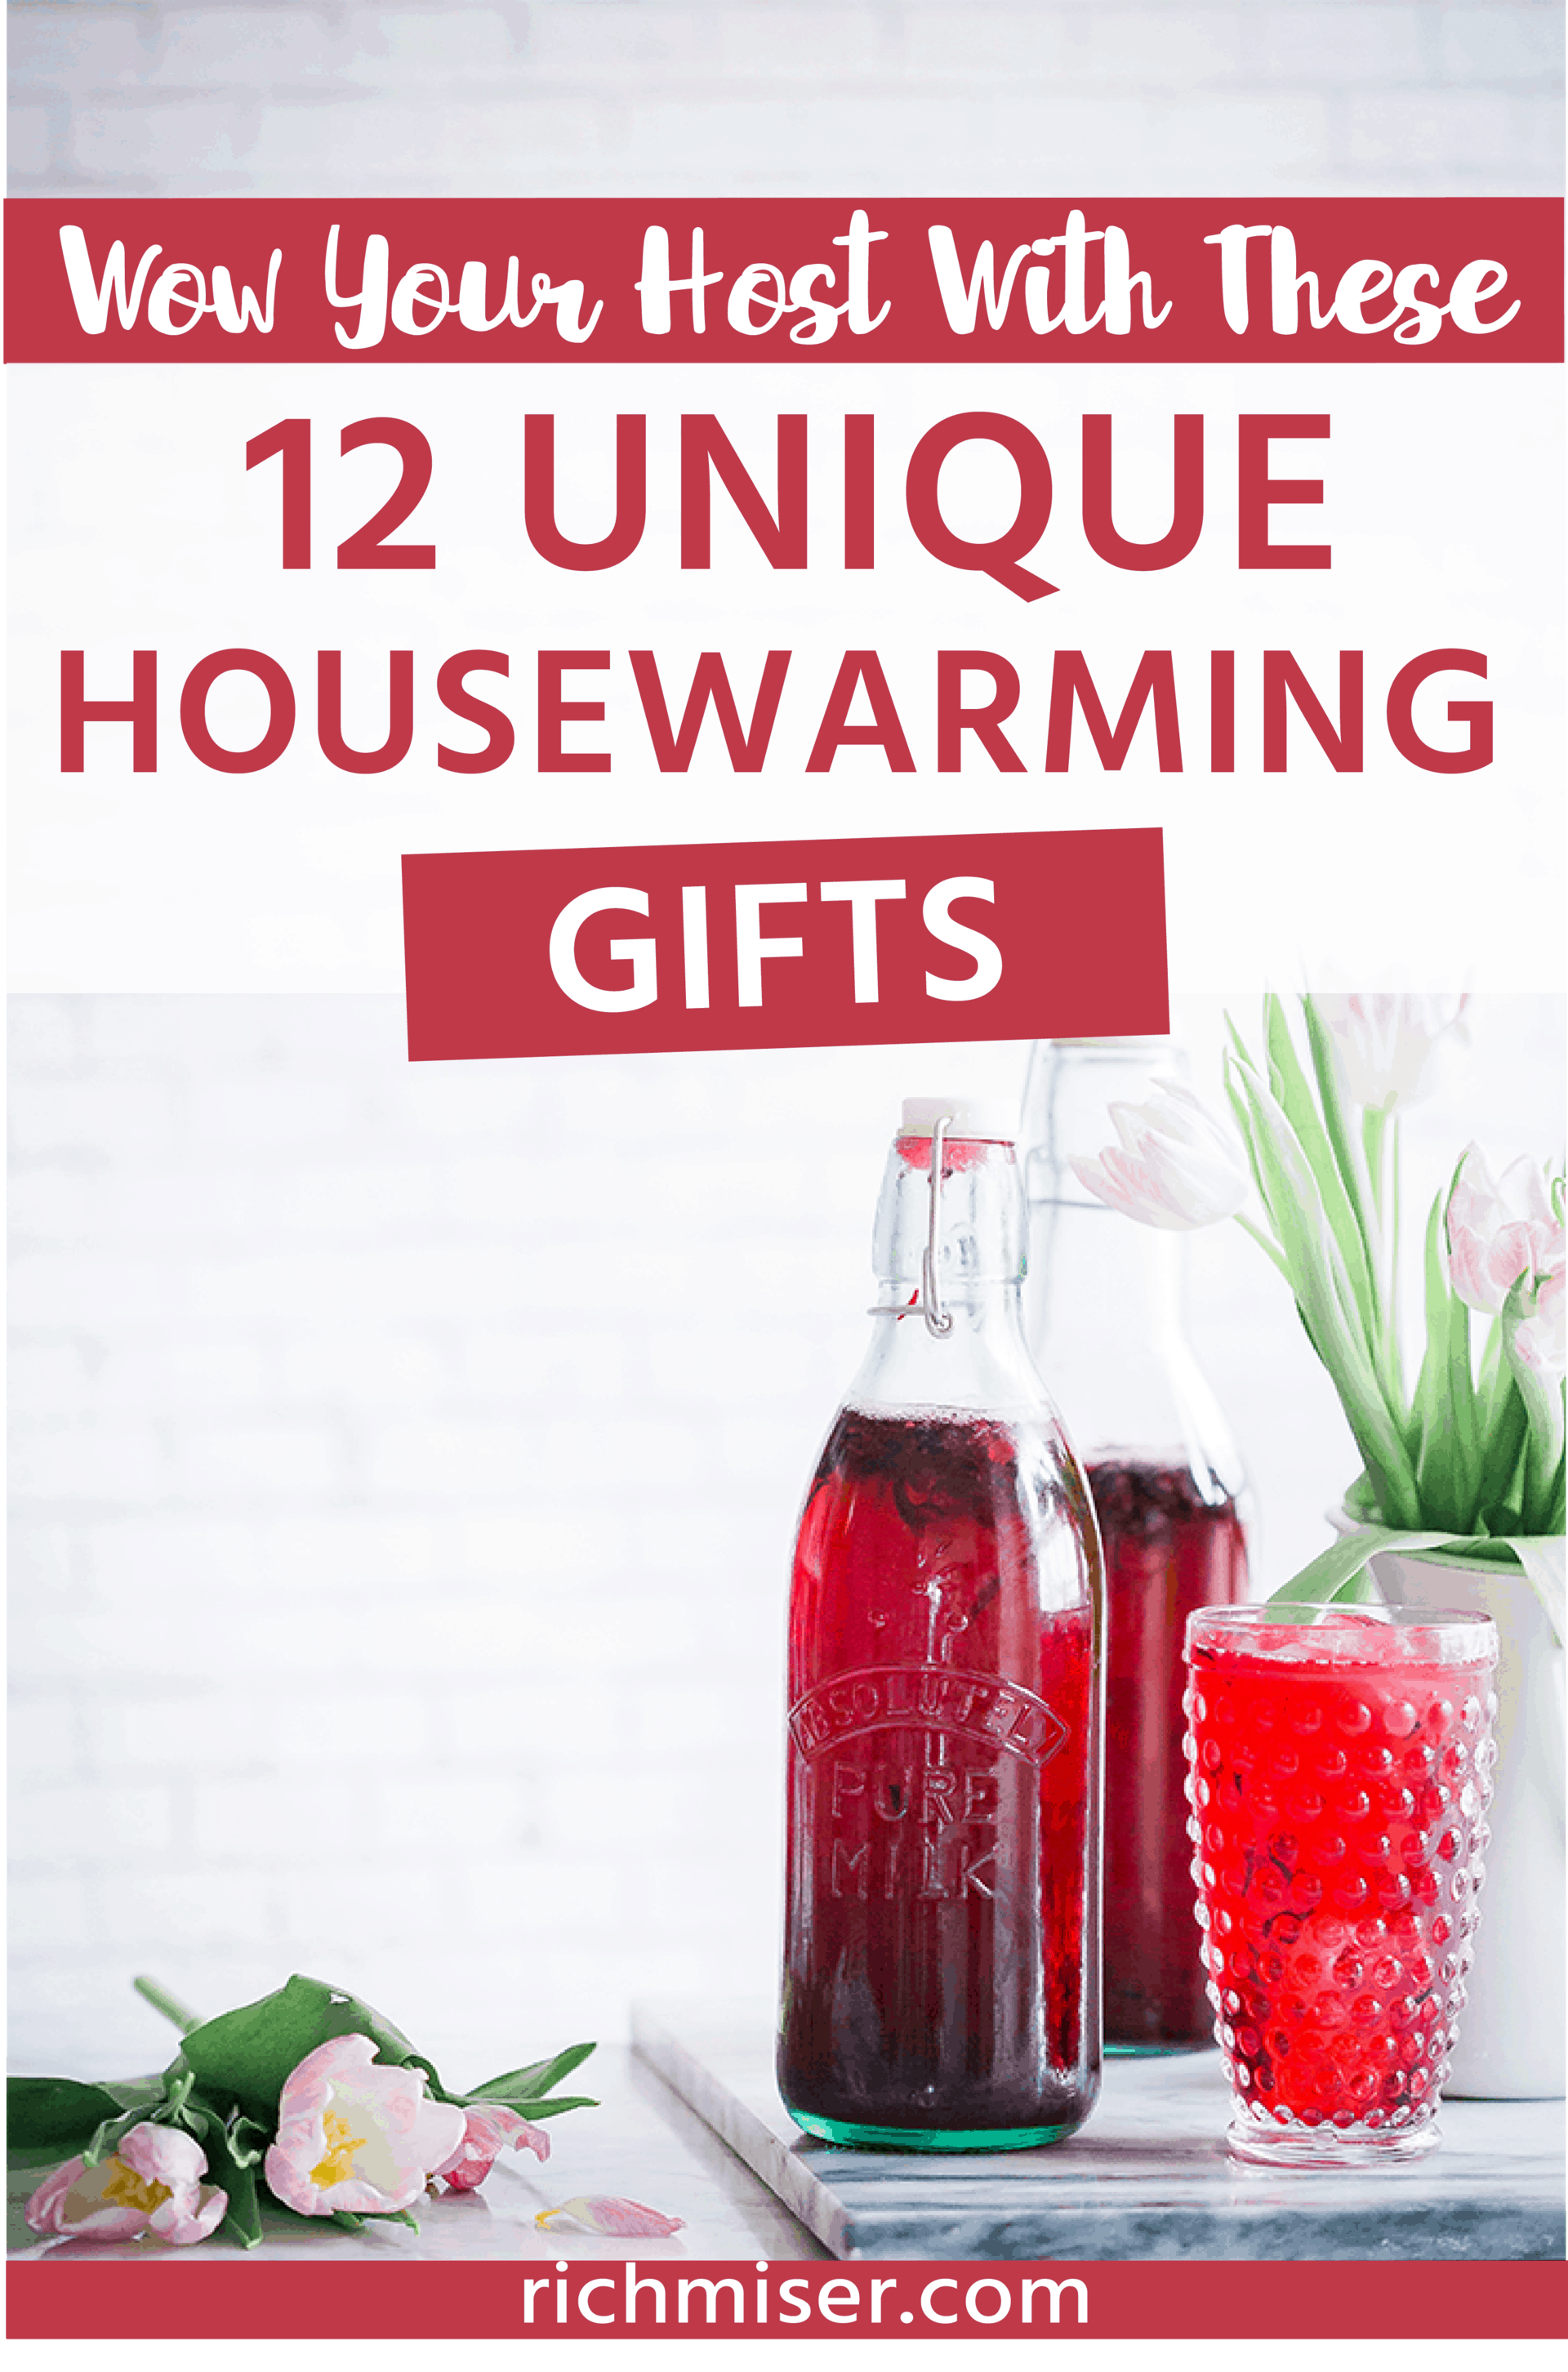 Wow Your Host With These 12 Unique Housewarming Gifts